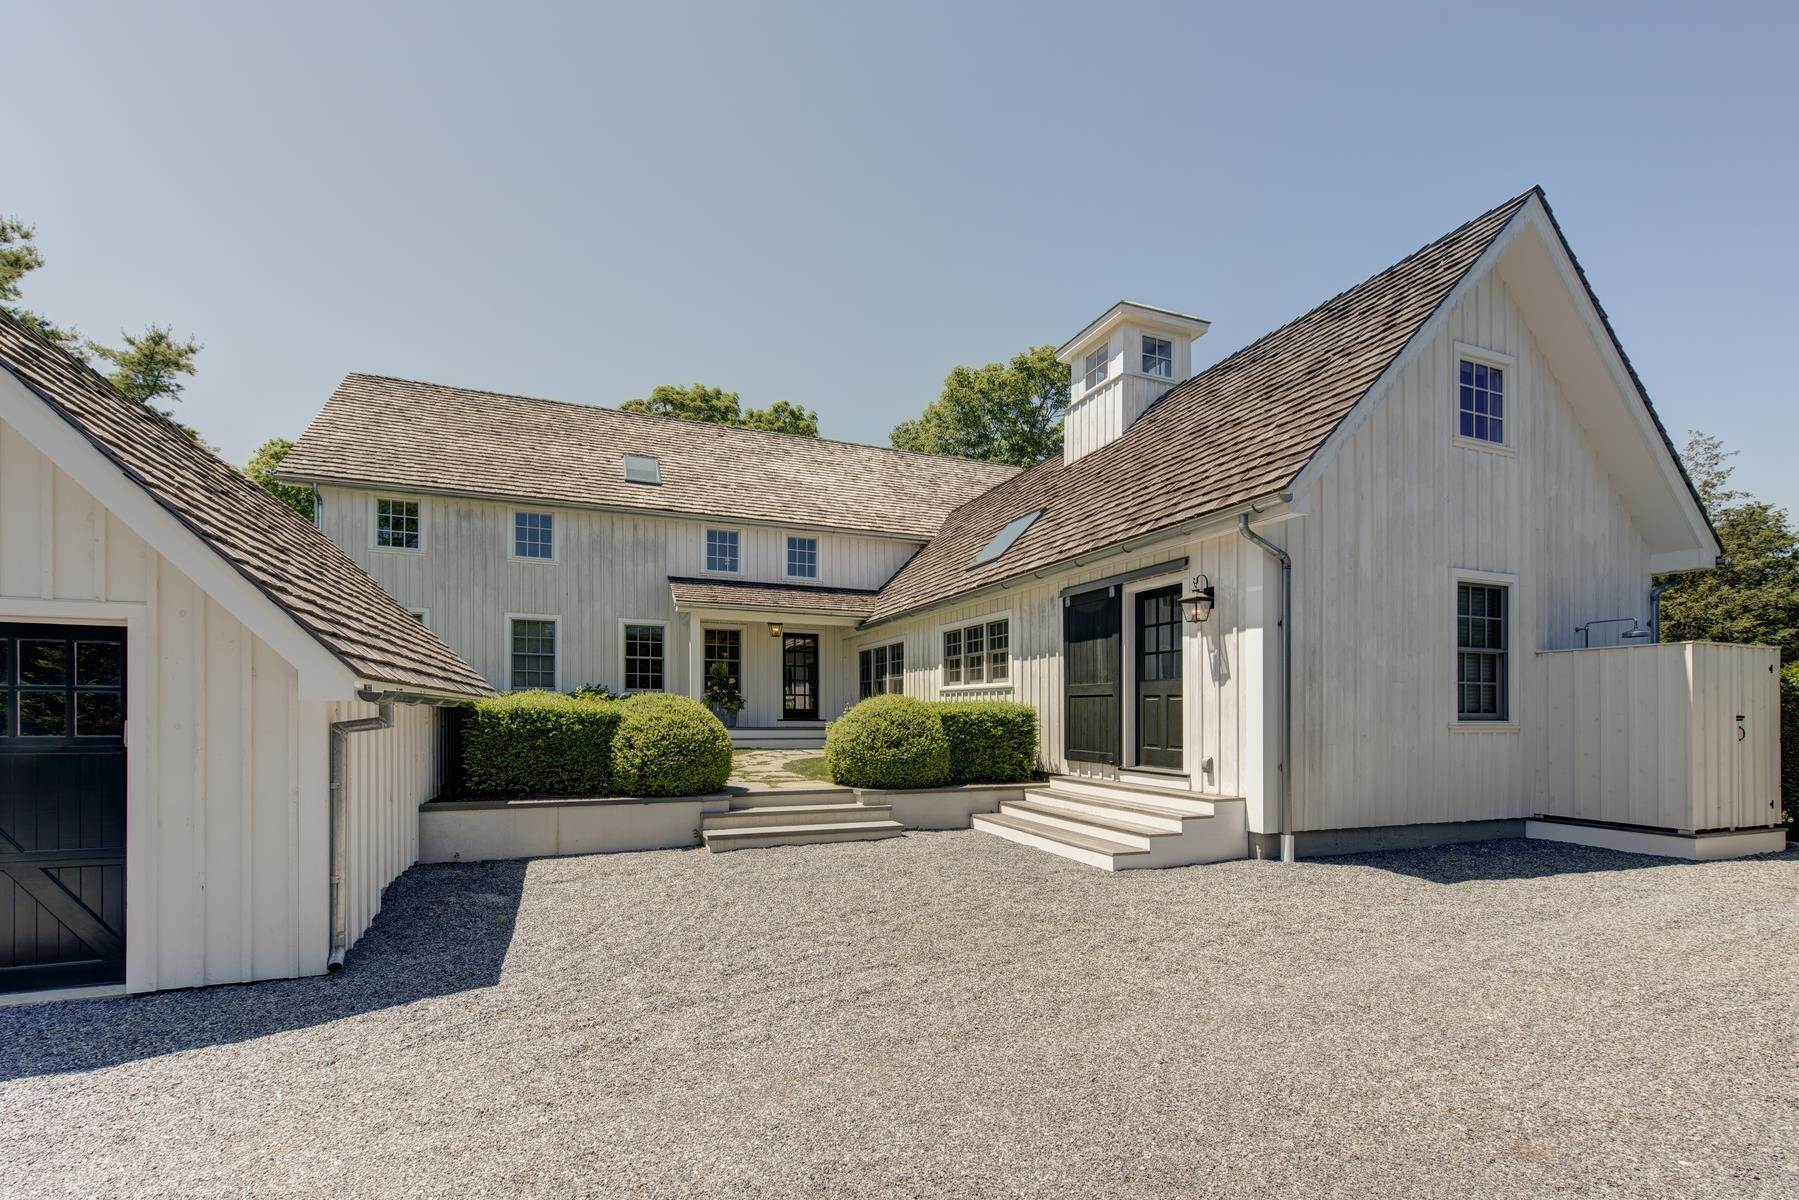 Real Estate at East Hampton, NY 11937